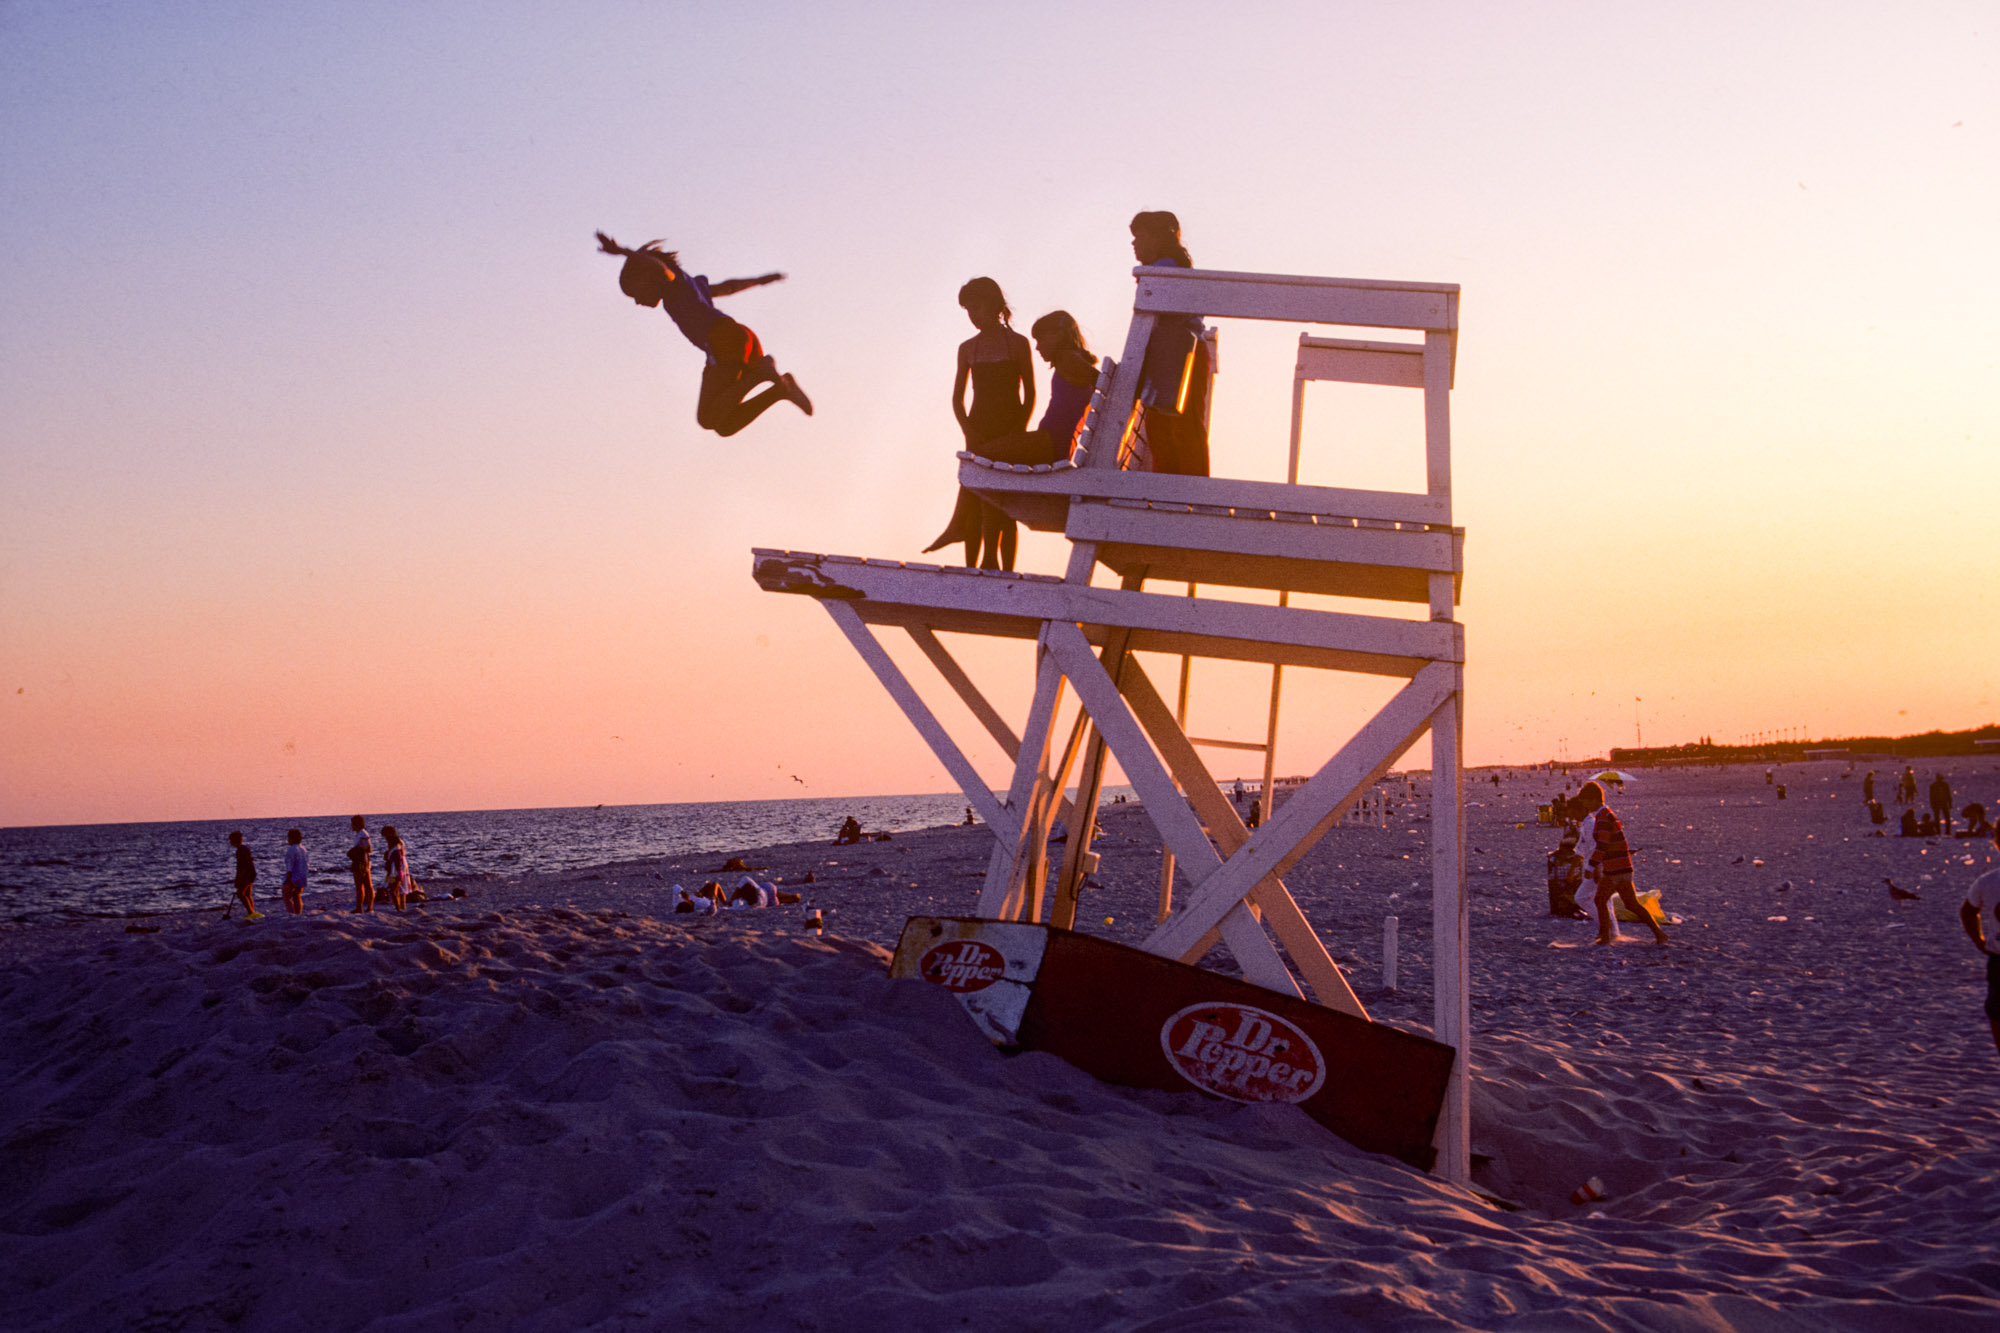 a child jumps off a lifeguard tower on a beach in New Jersey